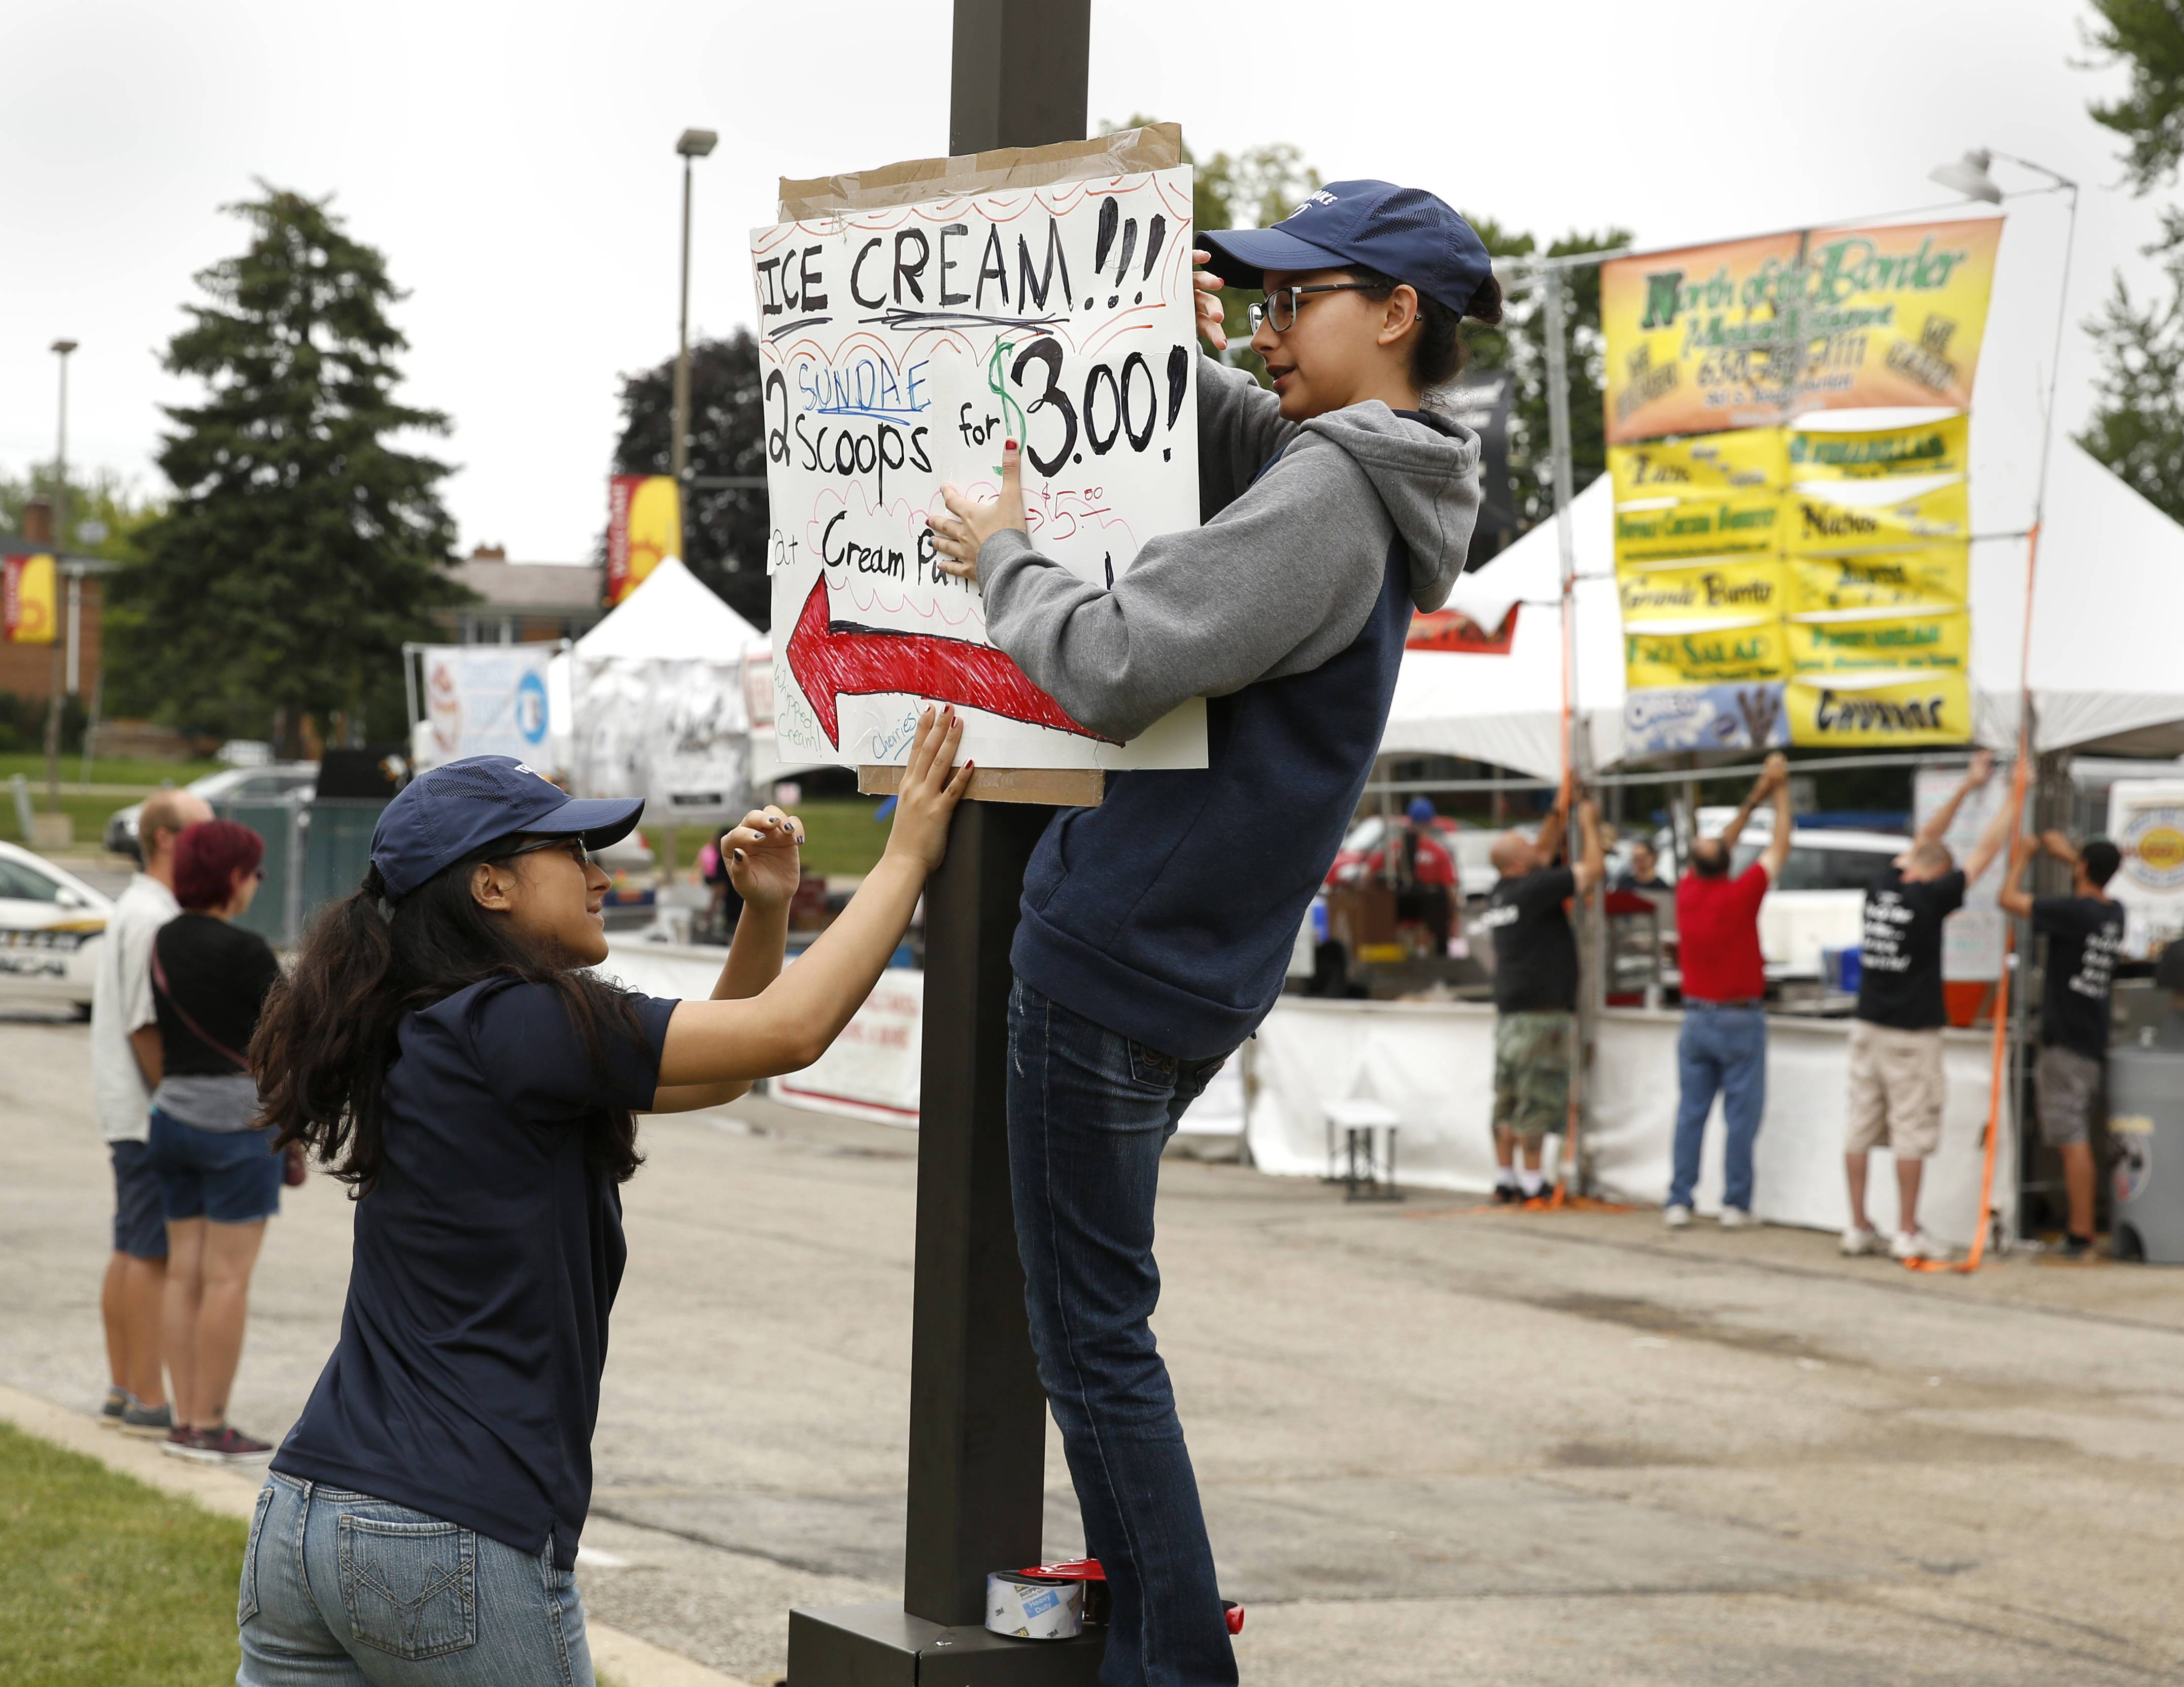 Hannah Avila, left, and her sister Aya Avila, right, put up a sign to direct customers to their ice cream and crème puffs stand Sunday during the last day of Itasca Fest.